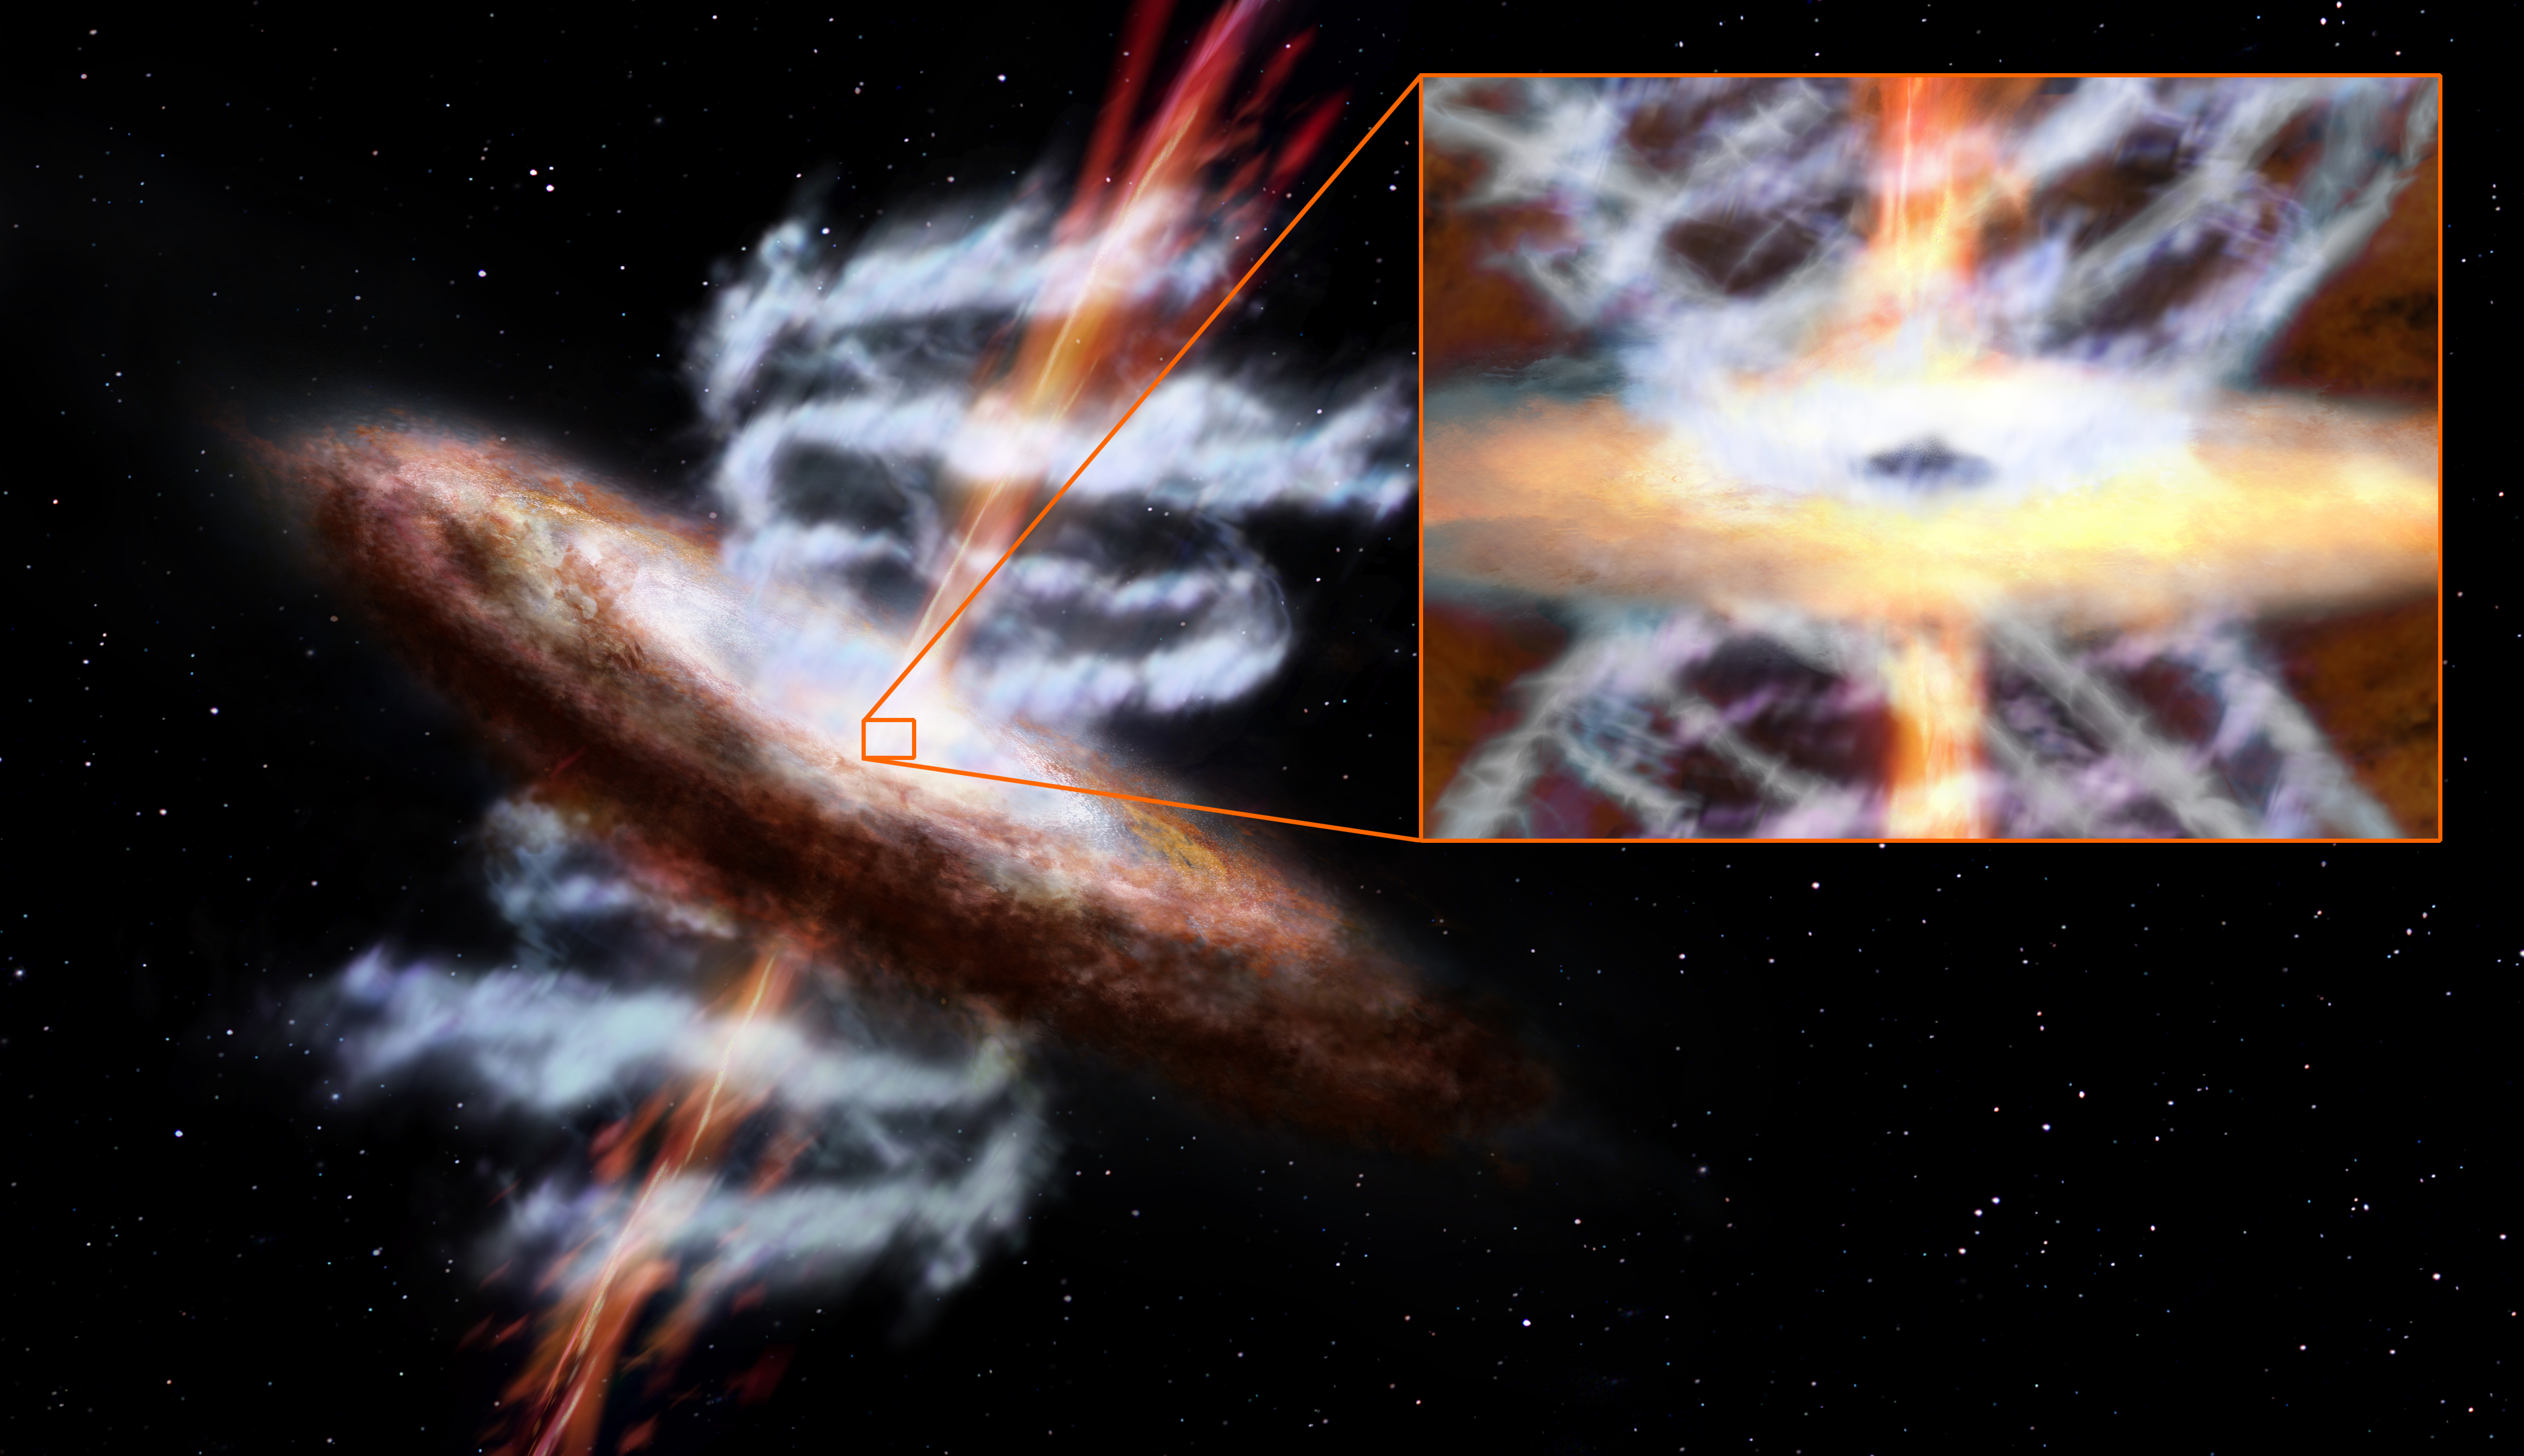 NASA has discovered a huge black hole moving at high speed